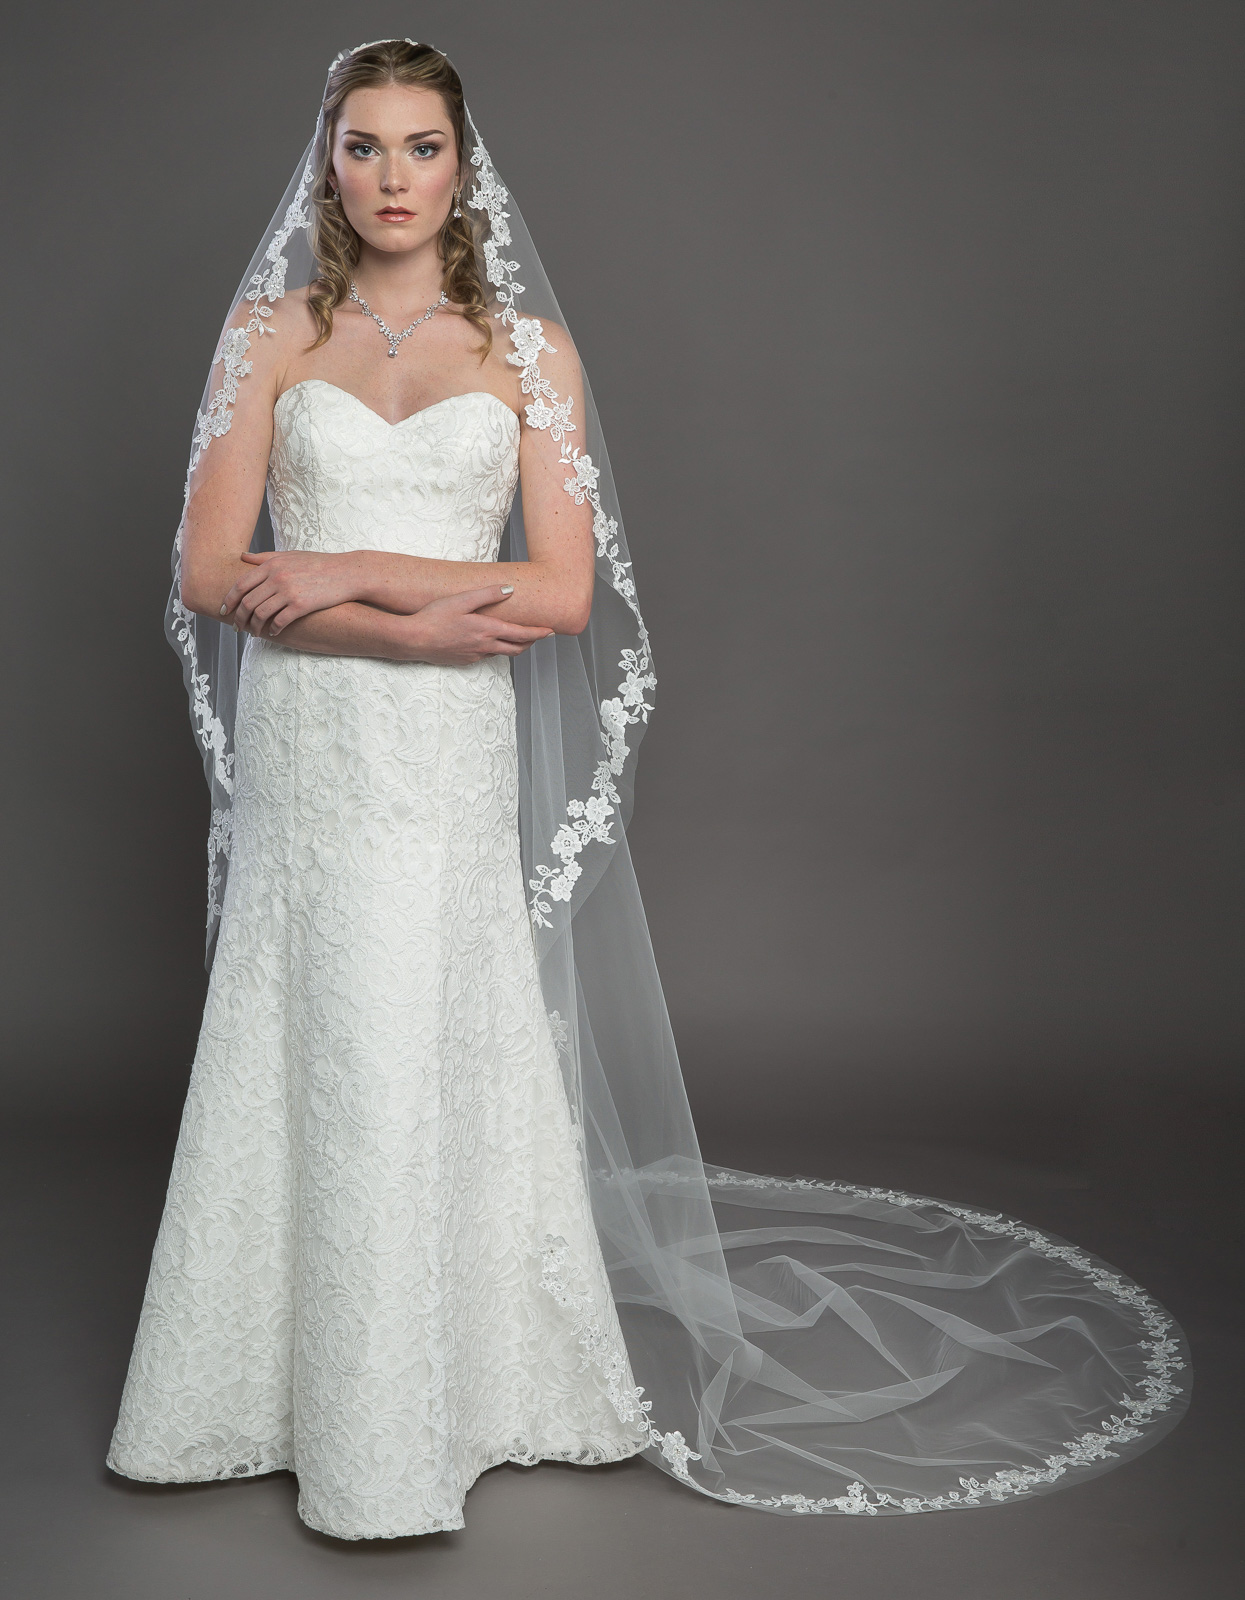 Bridal Classics Marquise Veil Collection MV-2409